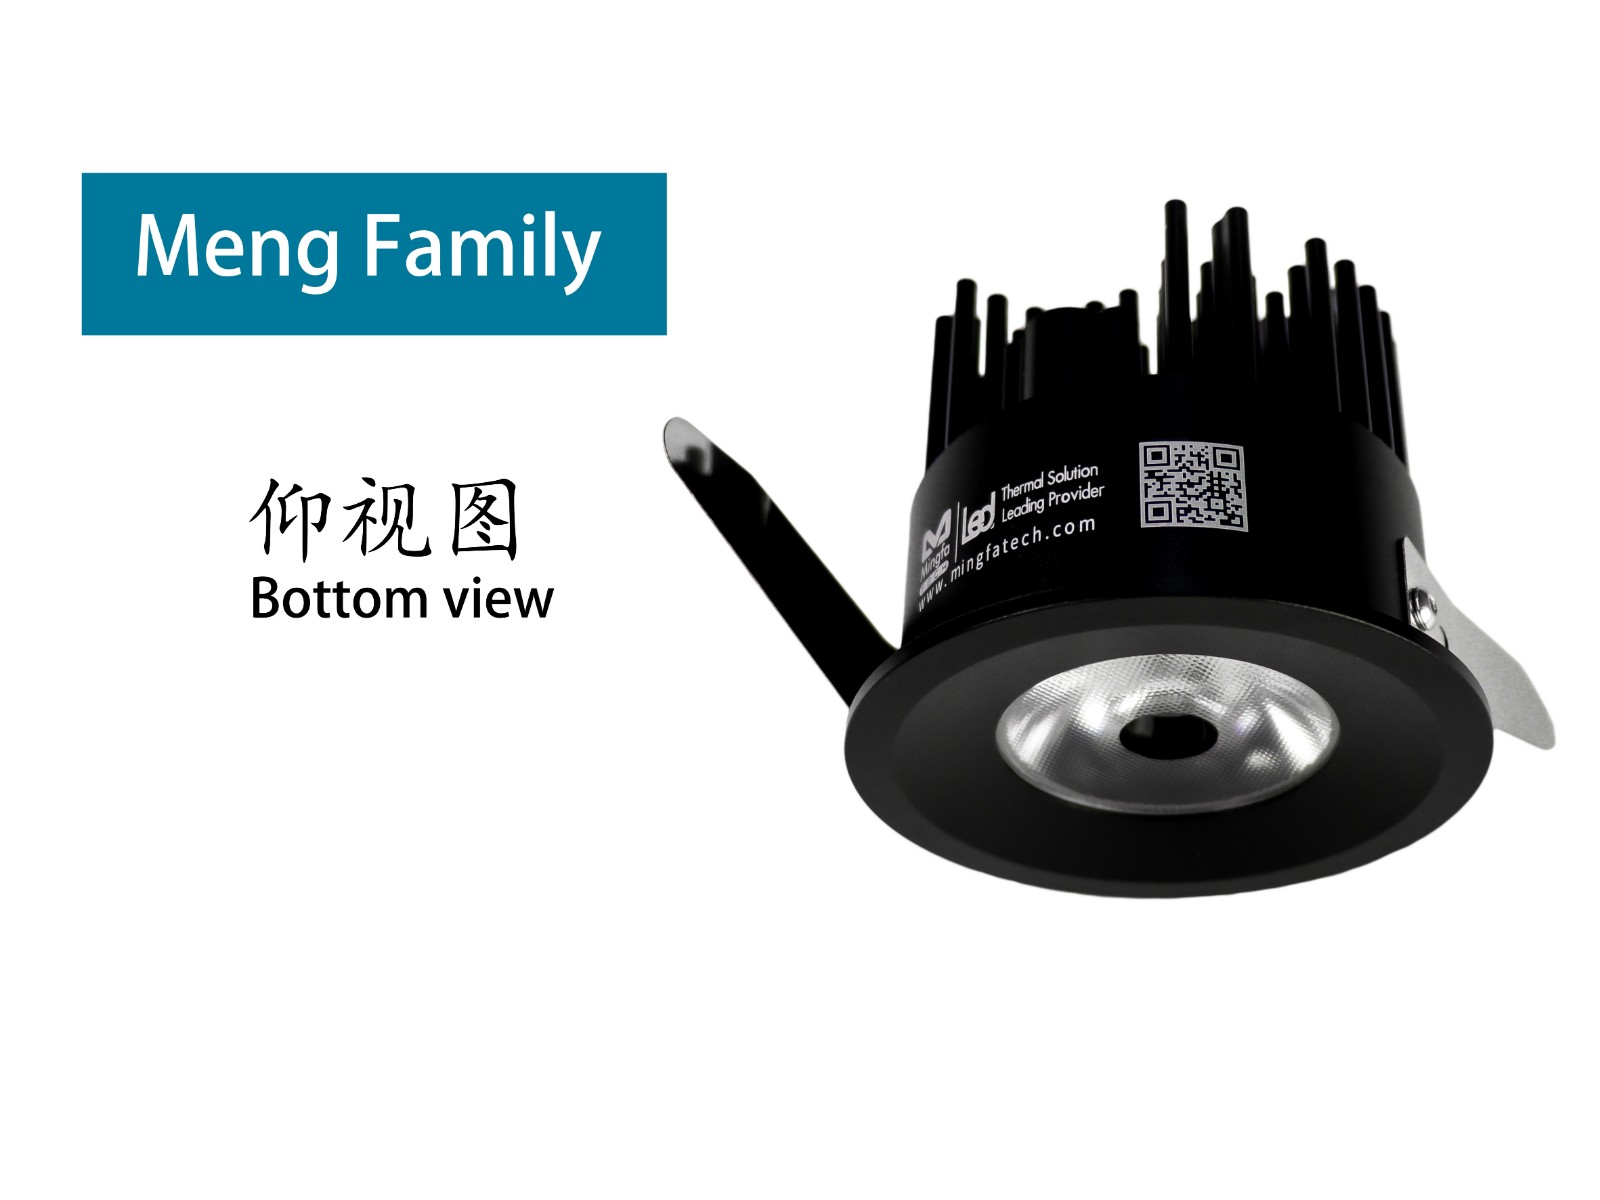 Mingfa Tech-New Product Pre-sale| Exquisite Compact Recessed Led Ceiling Spotlight-meng-2